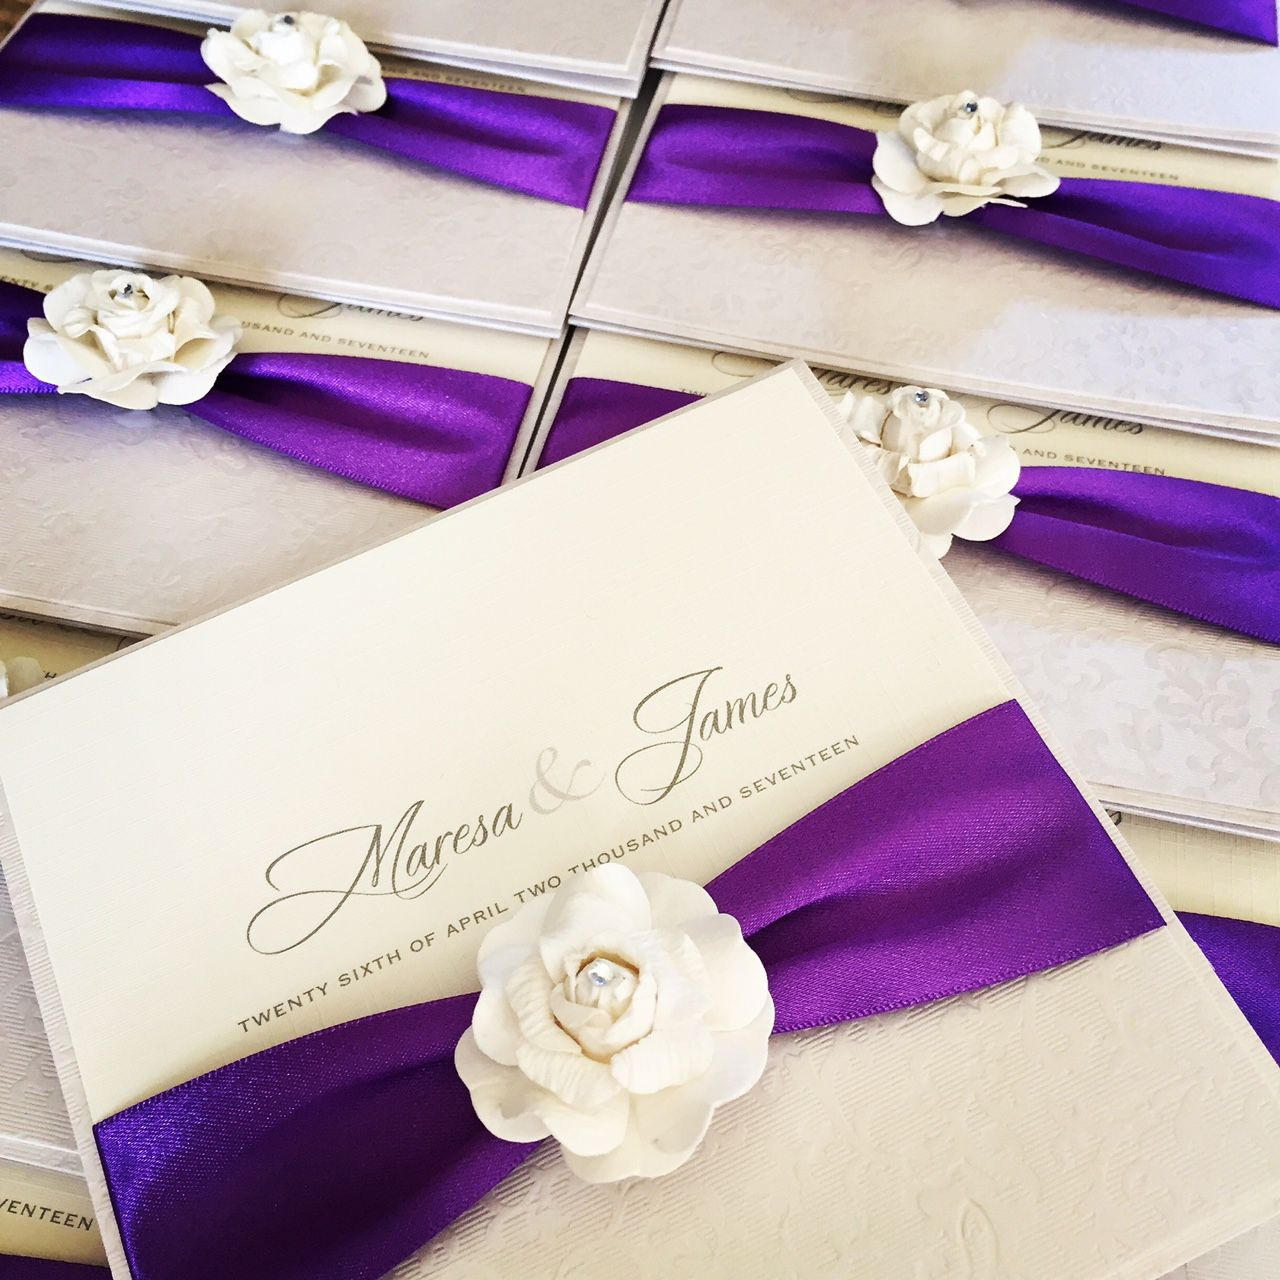 Rose themed wedding invitations with ivory roses and ribbons